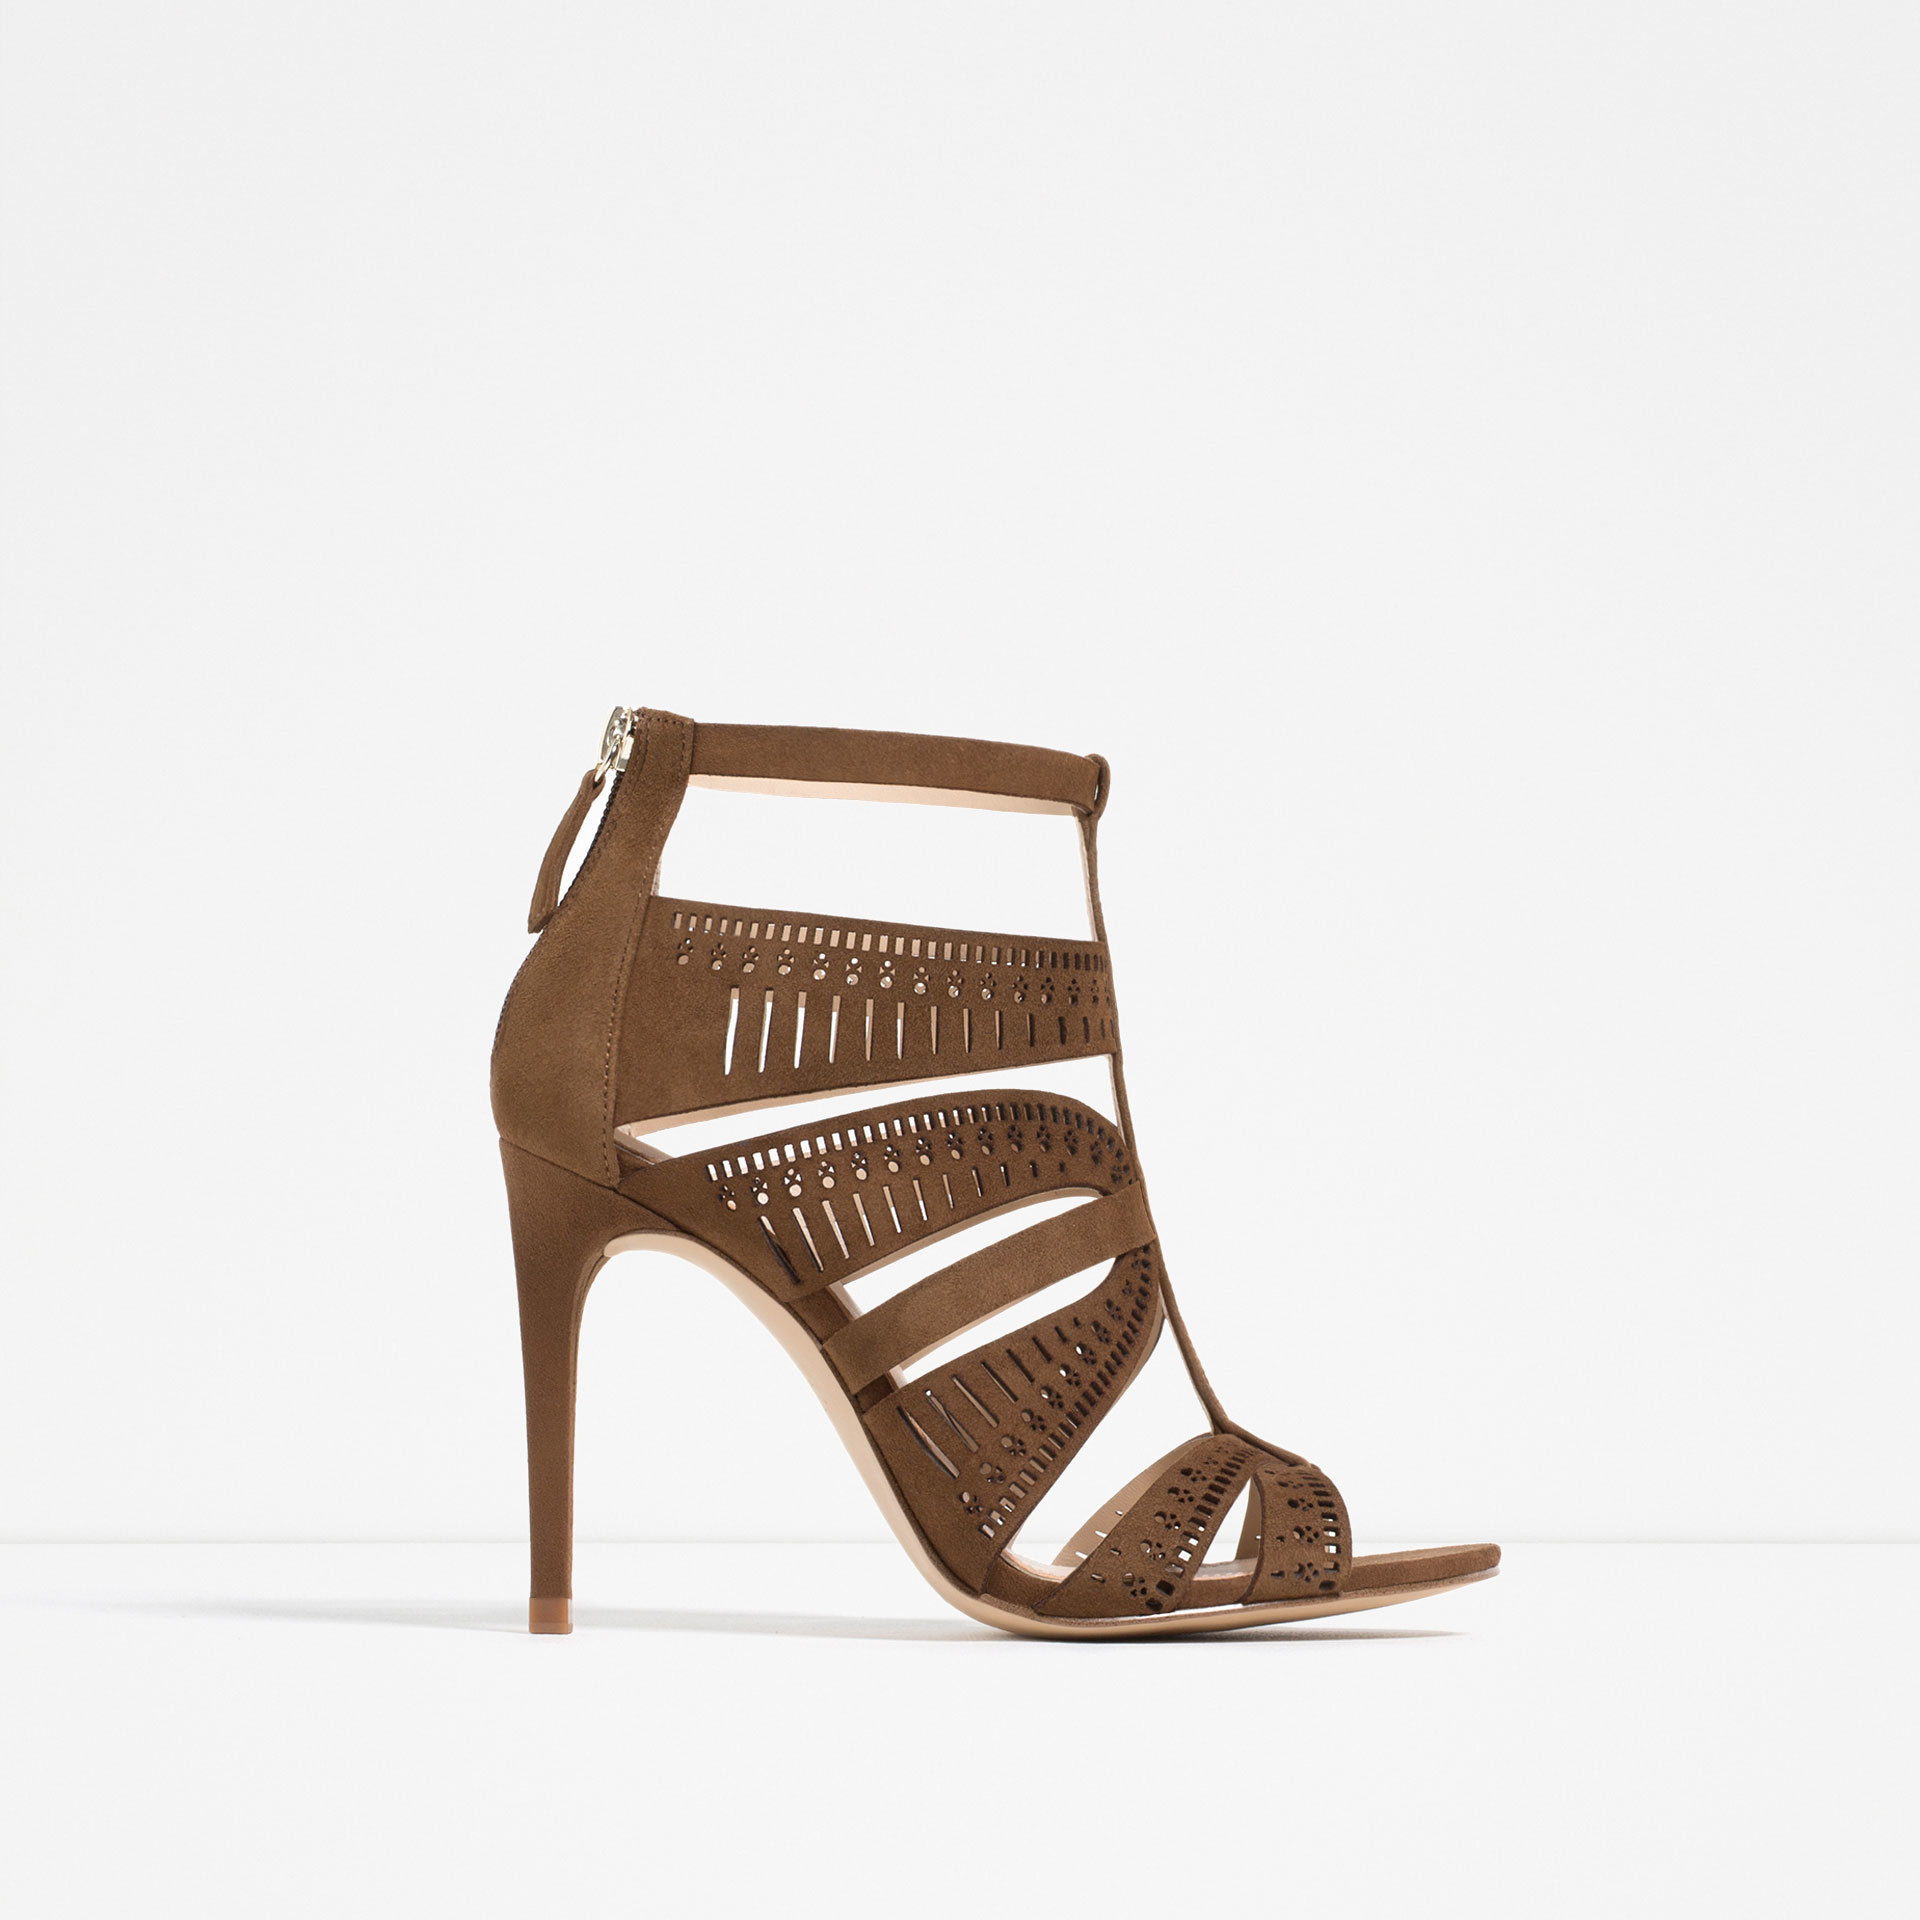 Zara Leather Strappy High Heel Sandals in Natural   Lyst